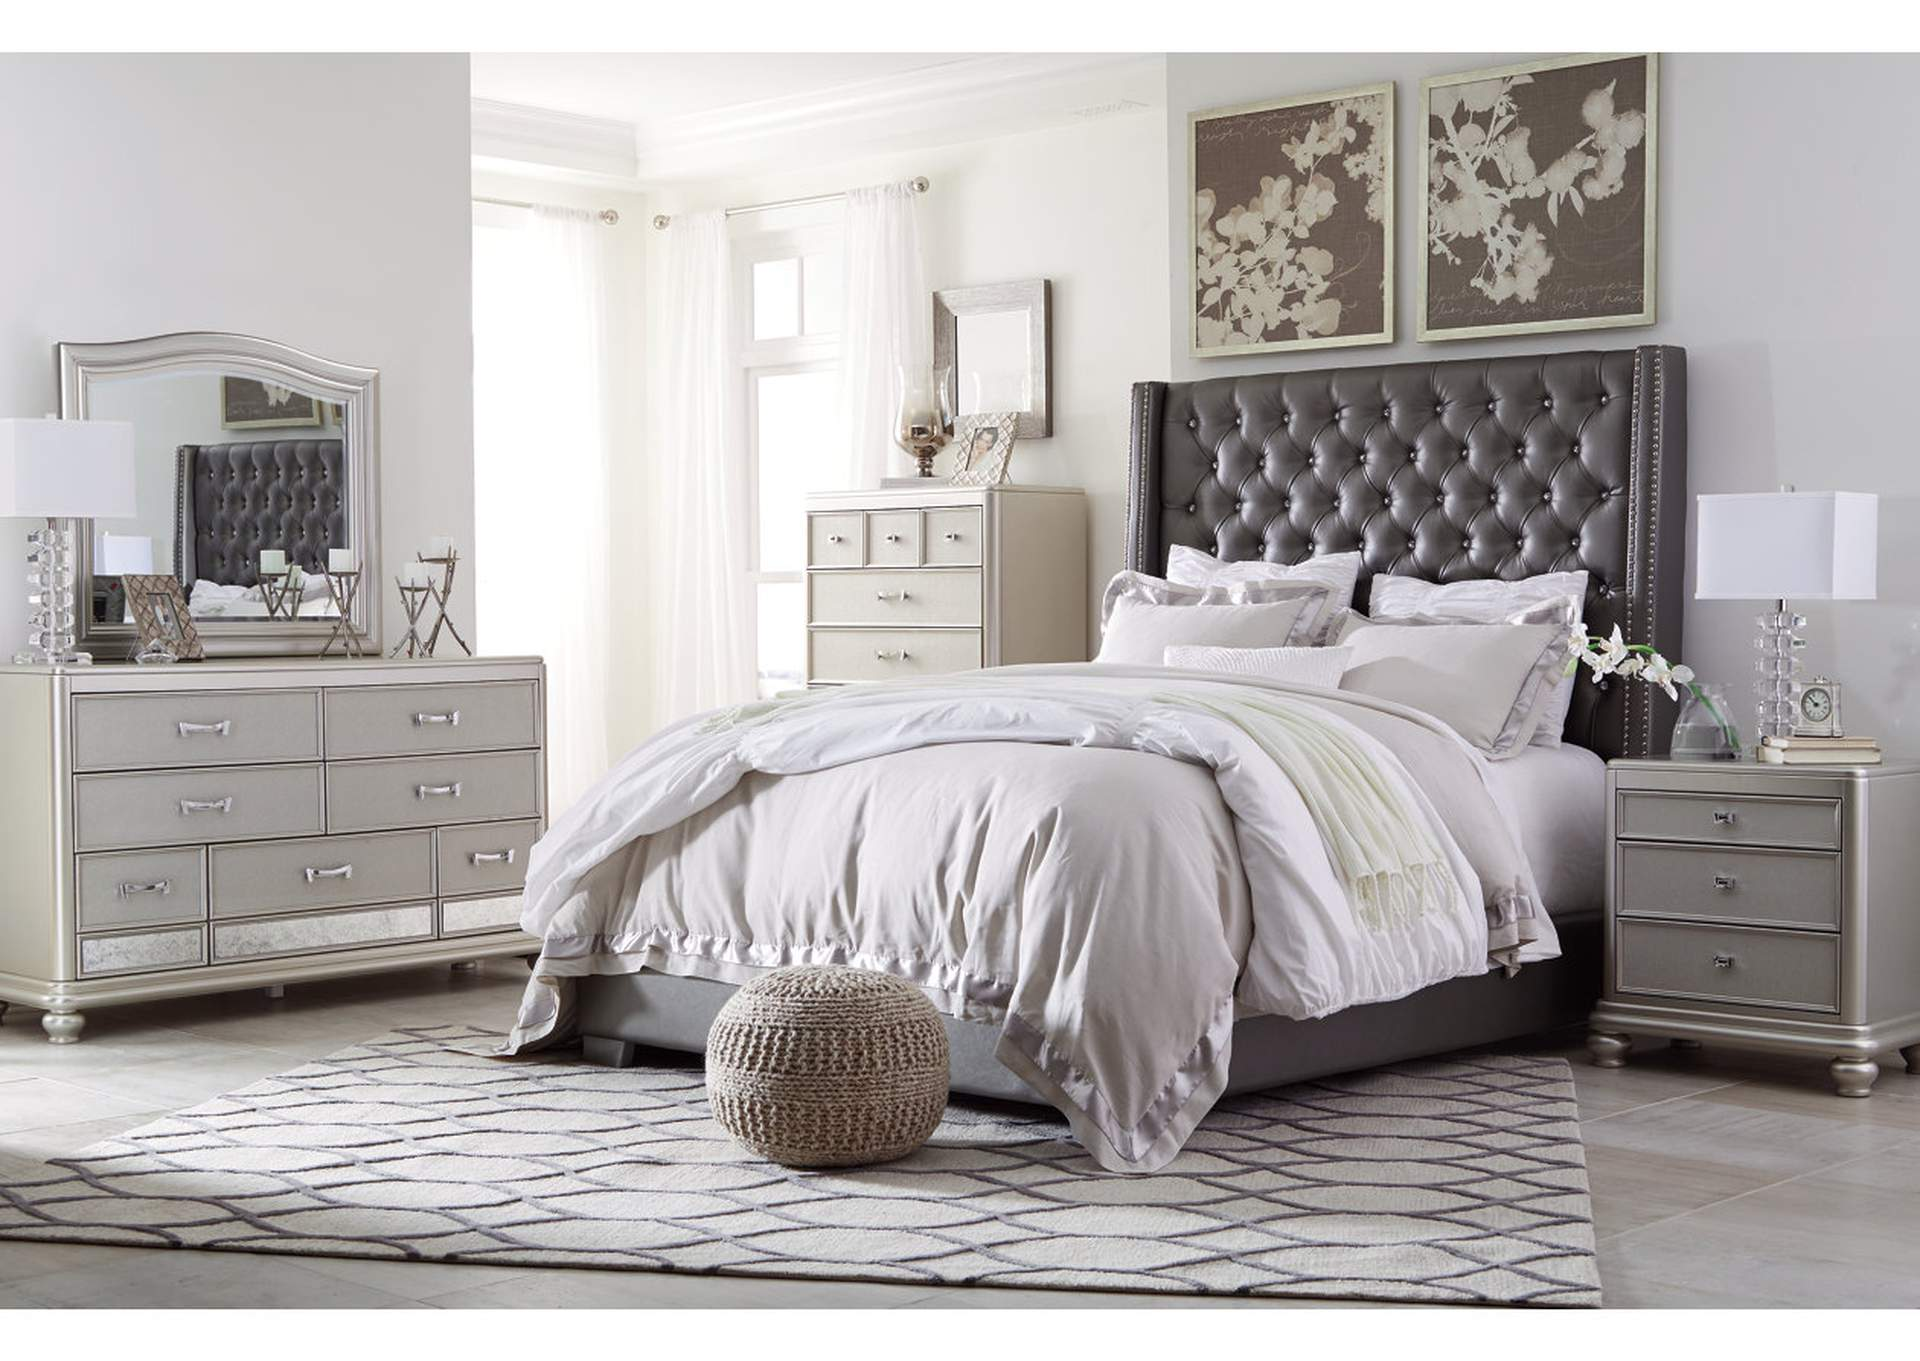 Coralayne Gray Queen Upholstered Bed w/Dresser, Mirror and Drawer Chest,Signature Design By Ashley